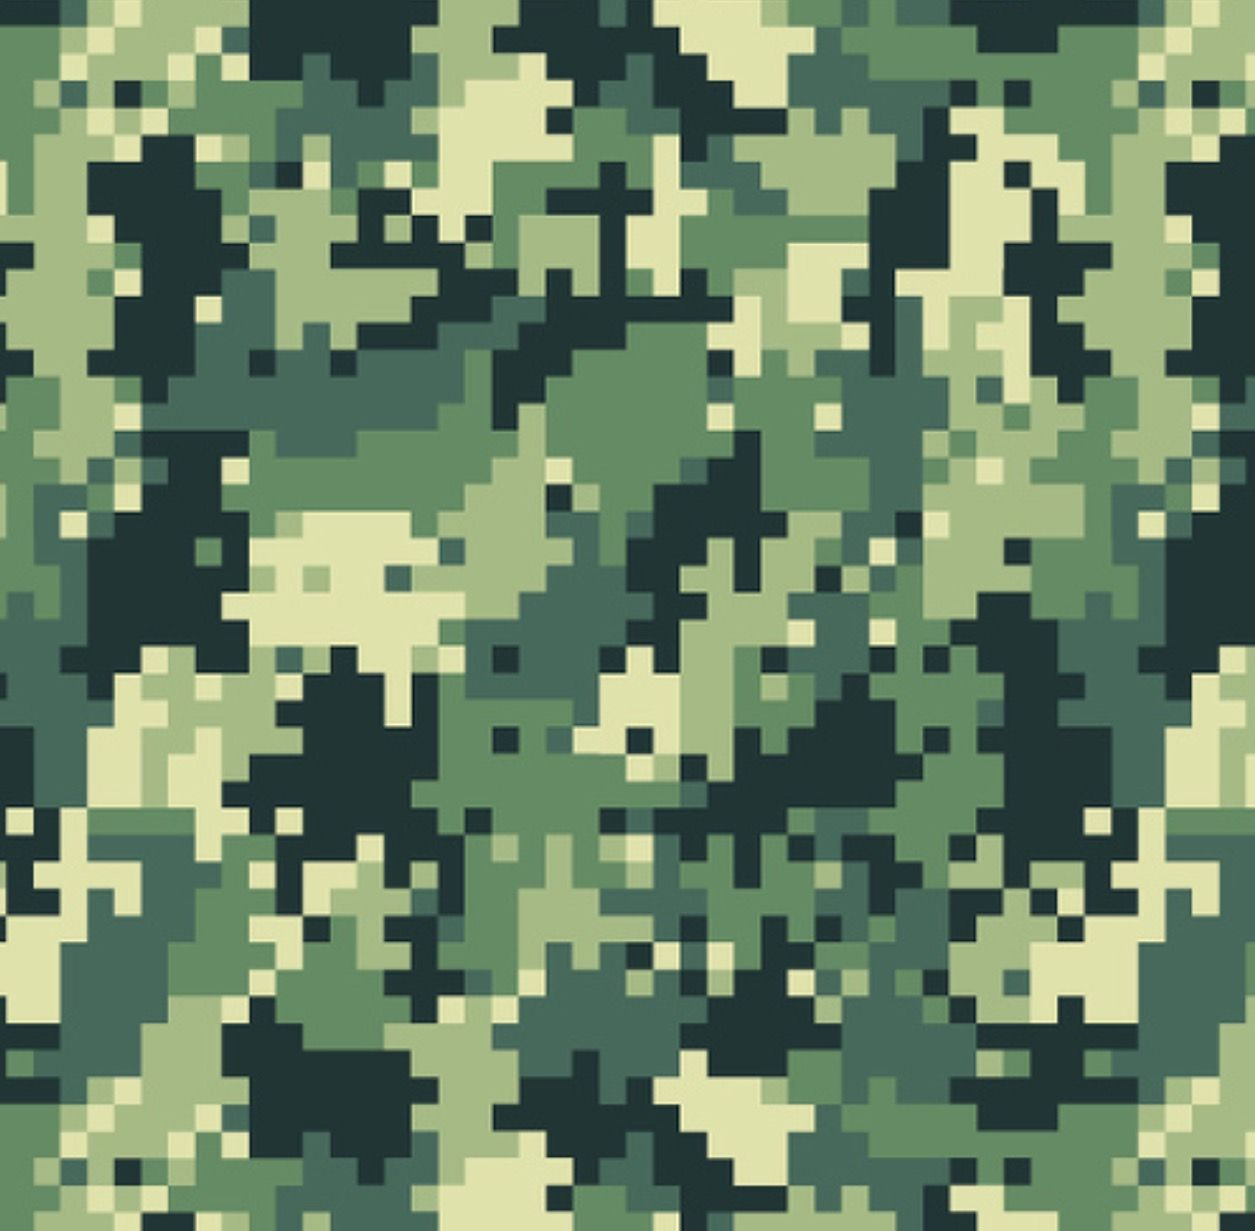 Camo Patterns Bead Quilt Marpat Camouflage Wallpaper Stuff Designs Digital Pattern Print